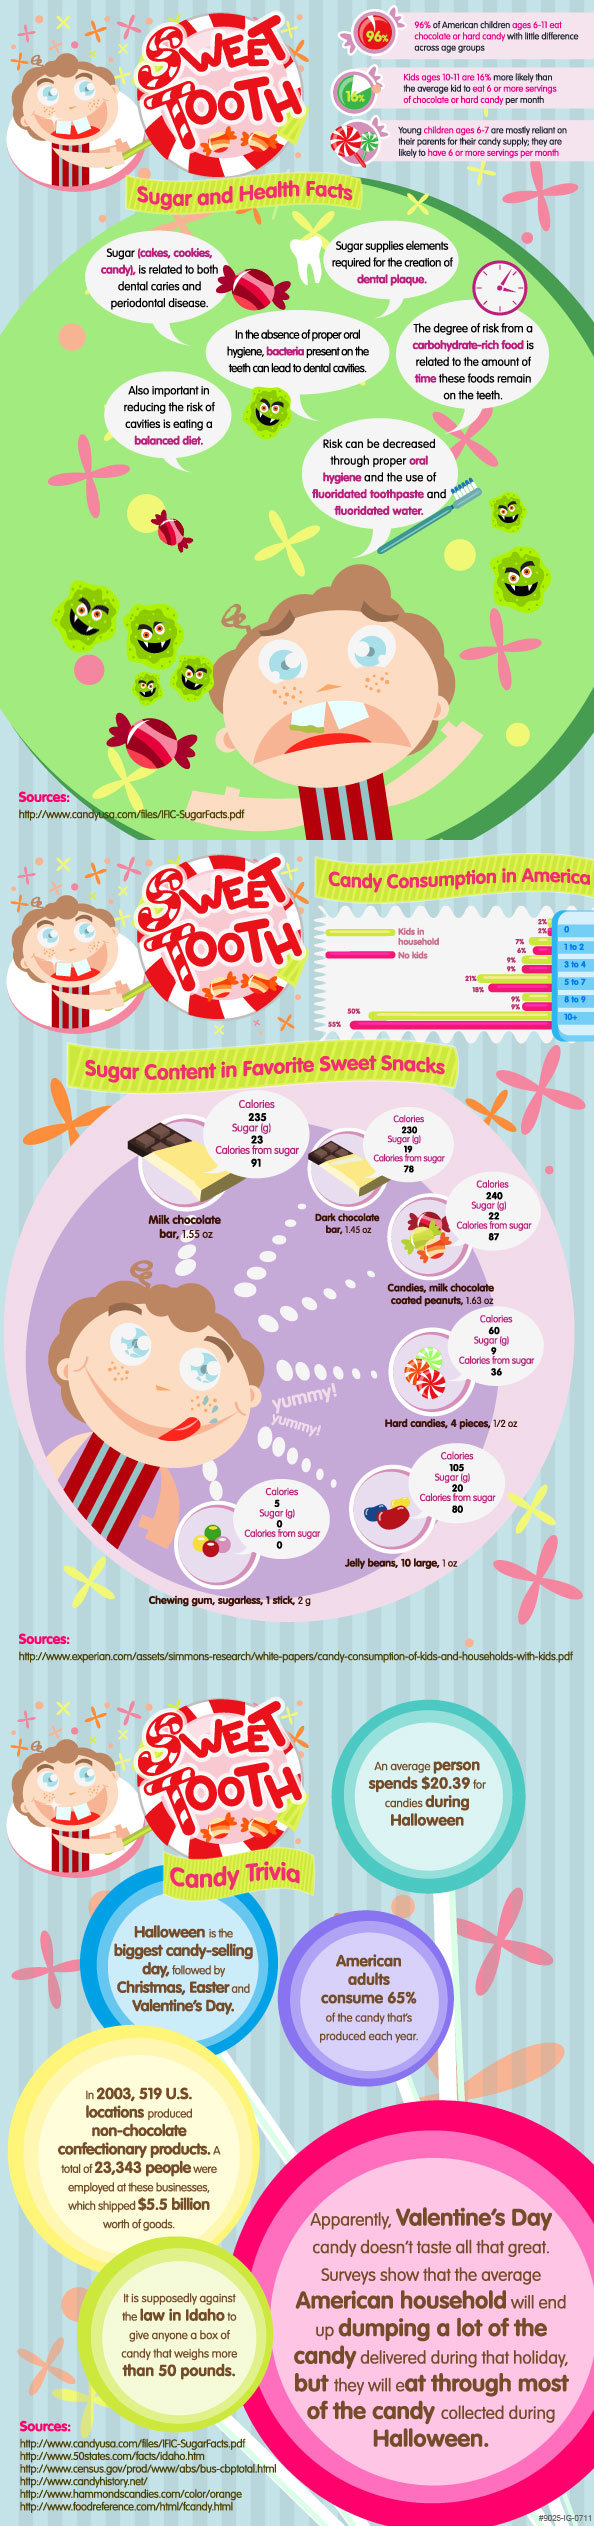 Sweet Tooth Sugar and Health Facts #infographic